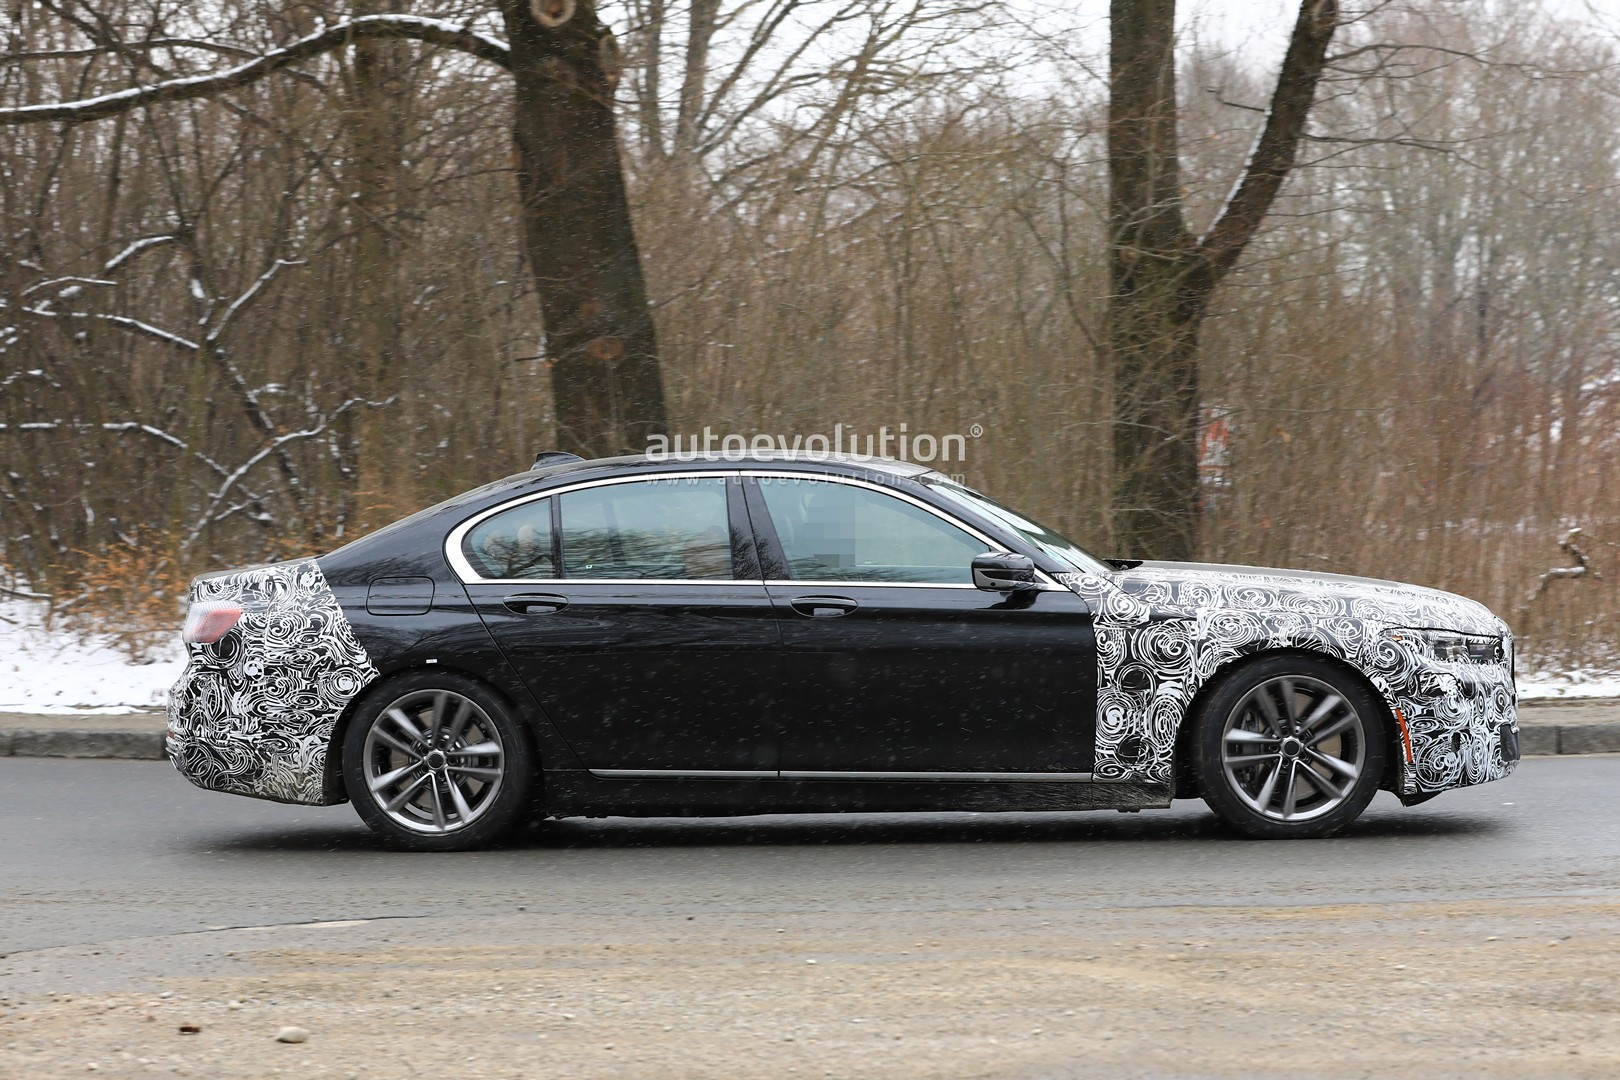 Bmw 7 Series Facelift Spied With Bigger Grille X7 Like